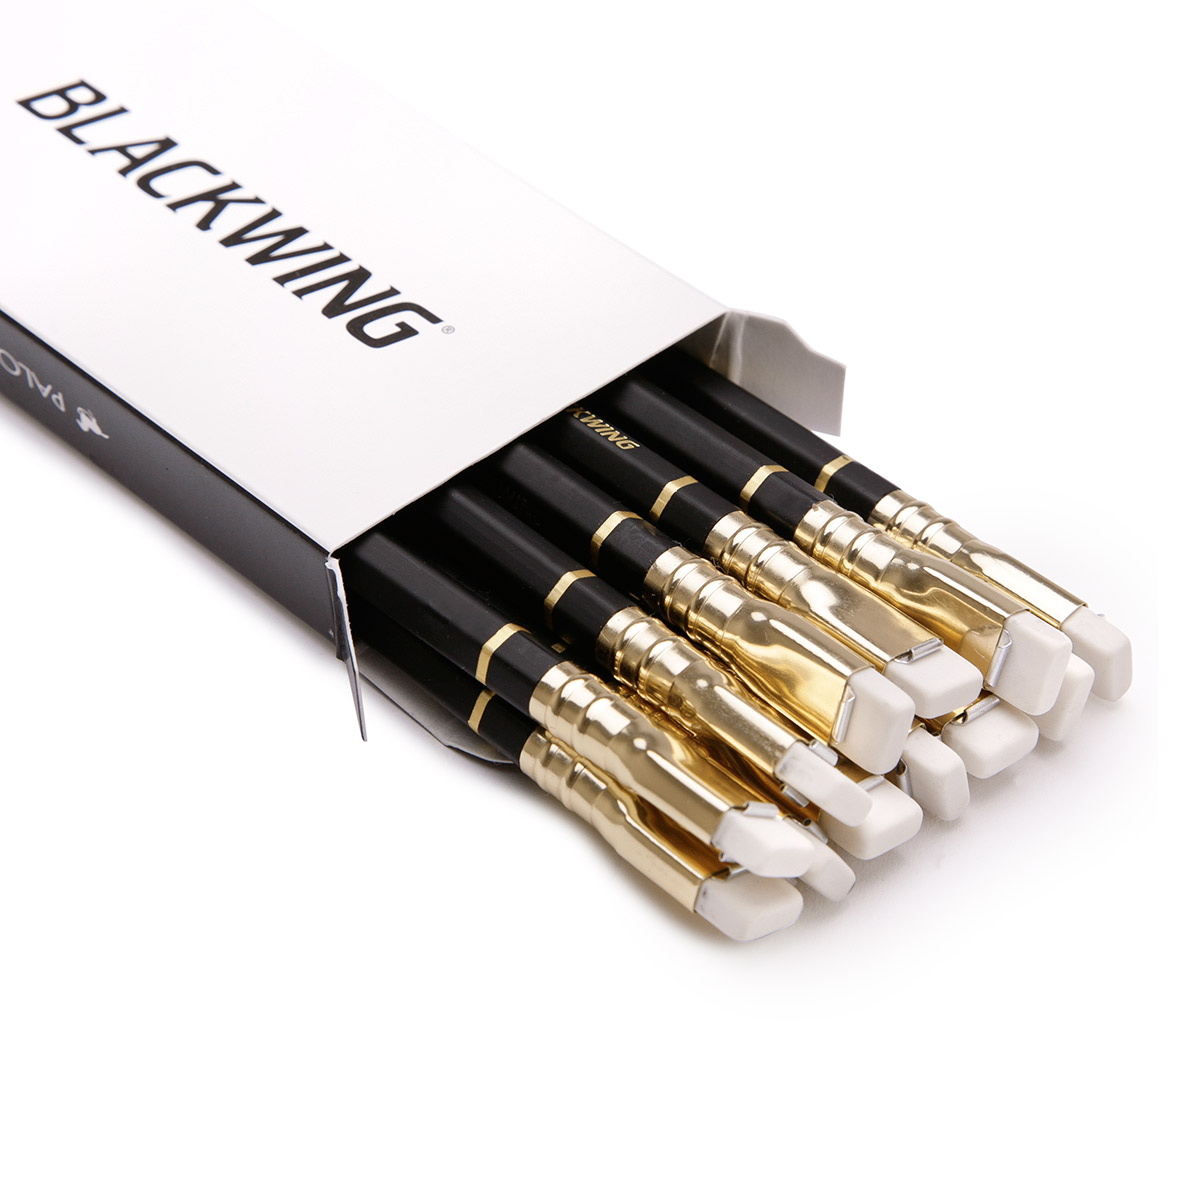 Blackwing soft graphite pencils 12 ct eco paper at vickerey